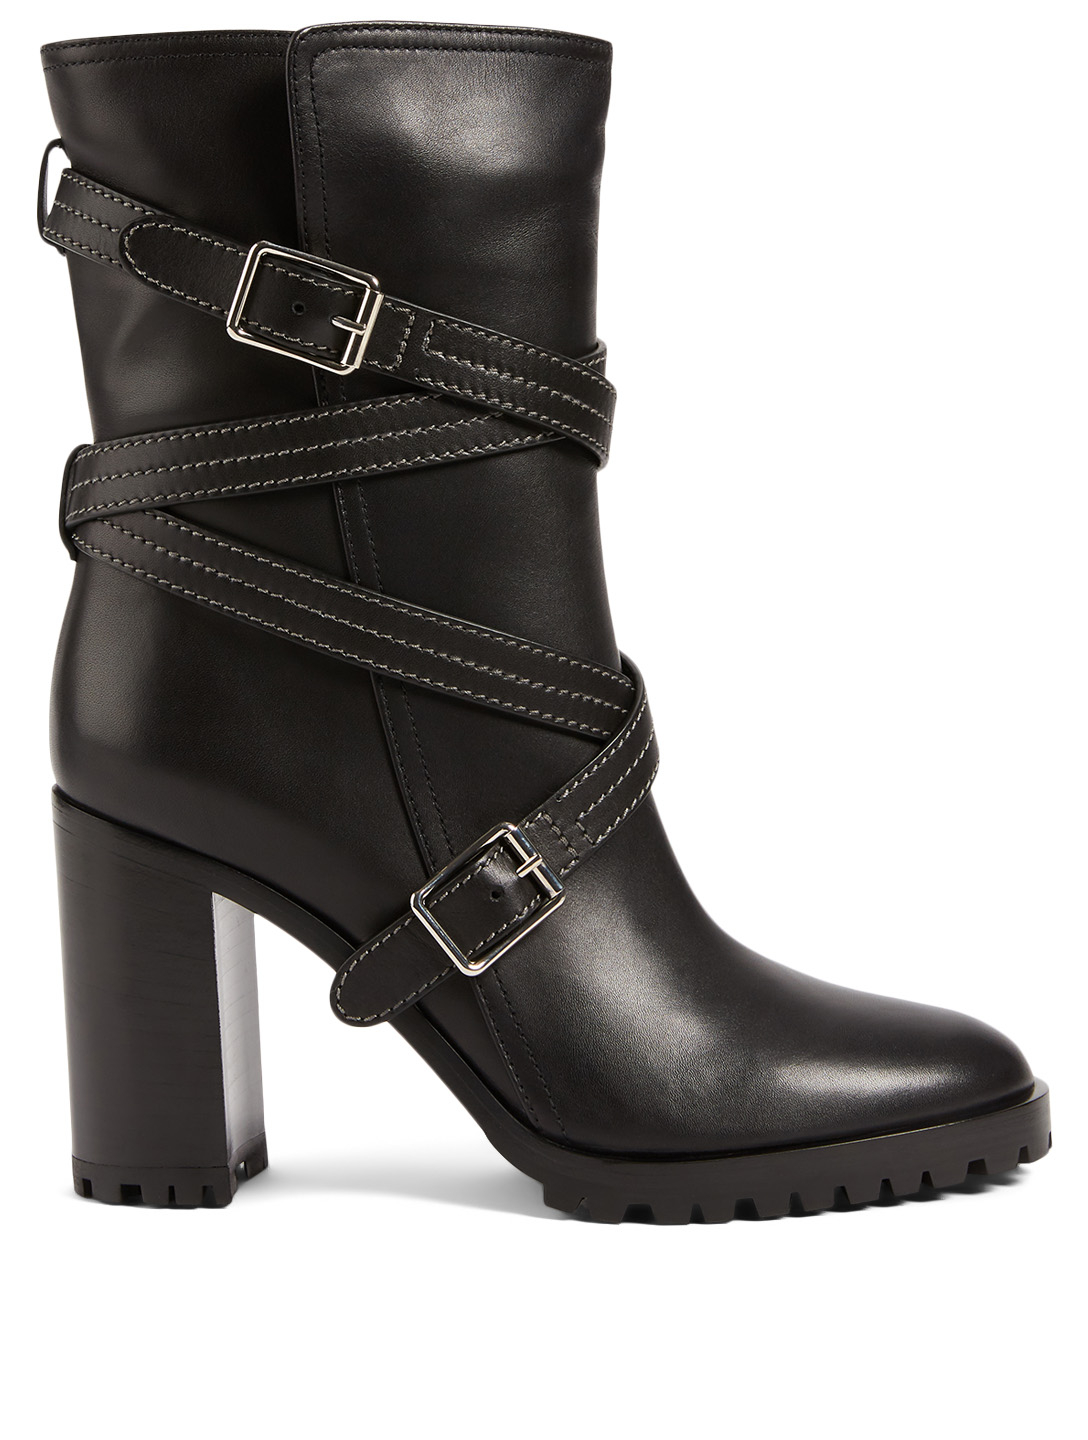 GIANVITO ROSSI Maren Leather Heeled Mid-Calf Boots Women's Black